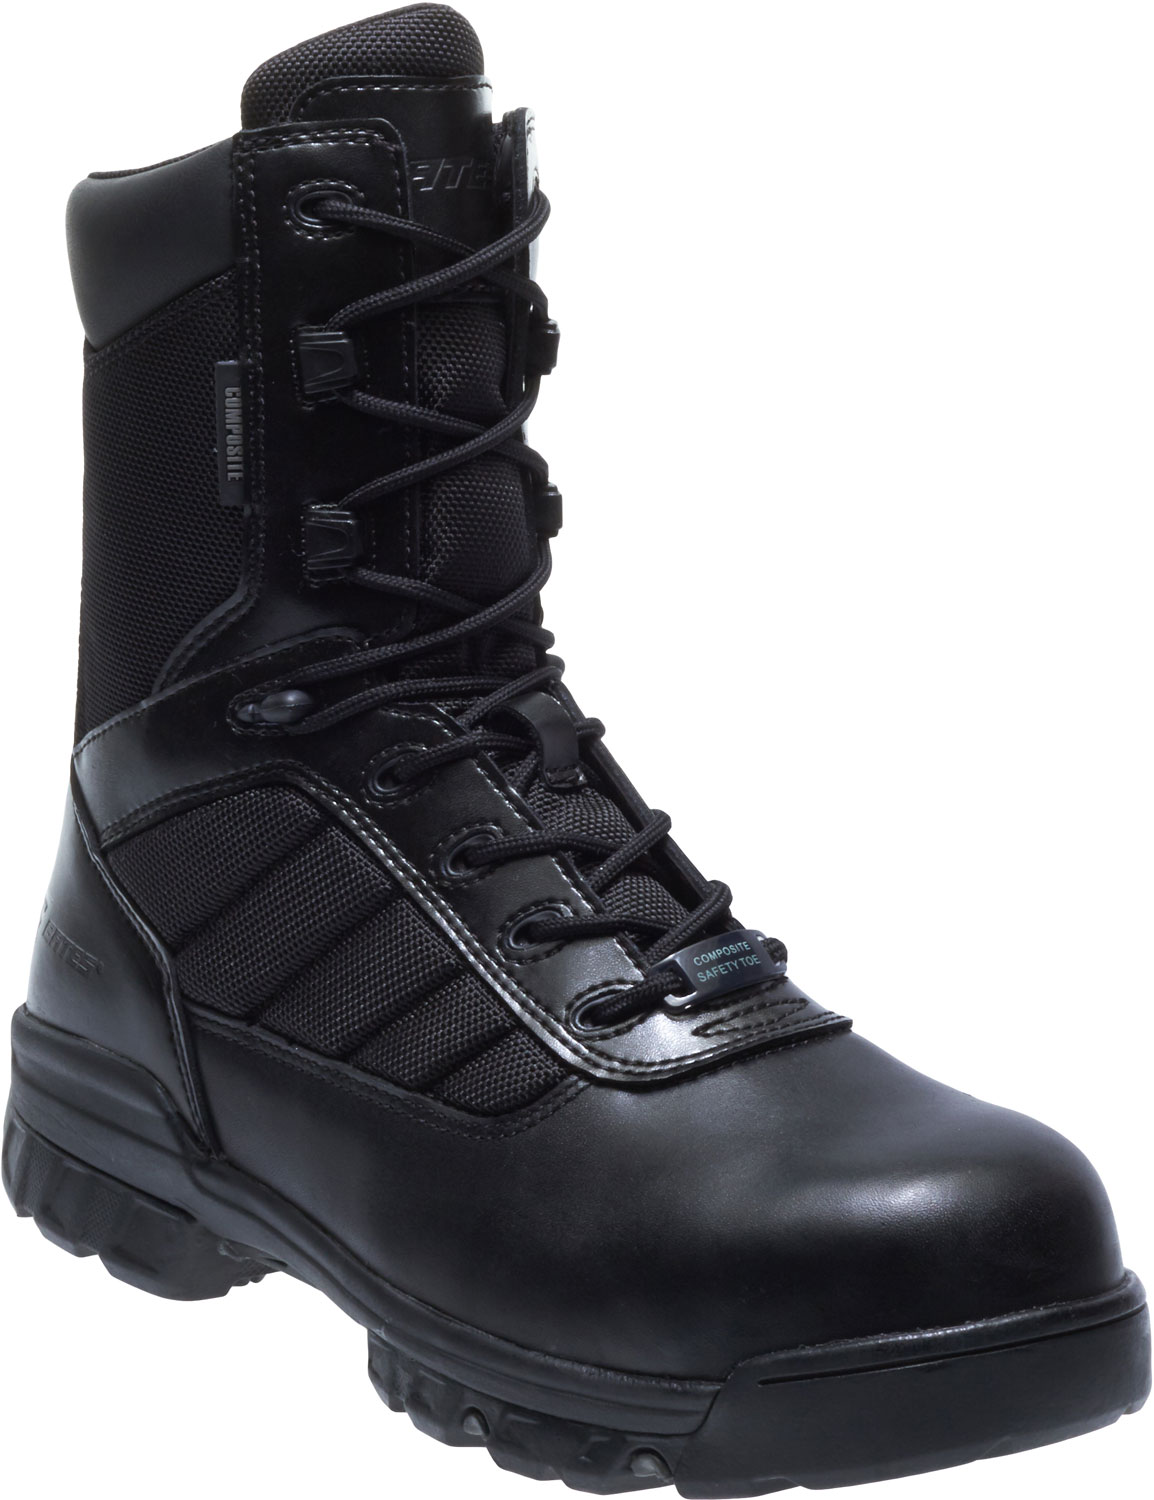 a31c88765f2 Bates Black 8 Inch Tactical Comp Toe Side Zip Boot